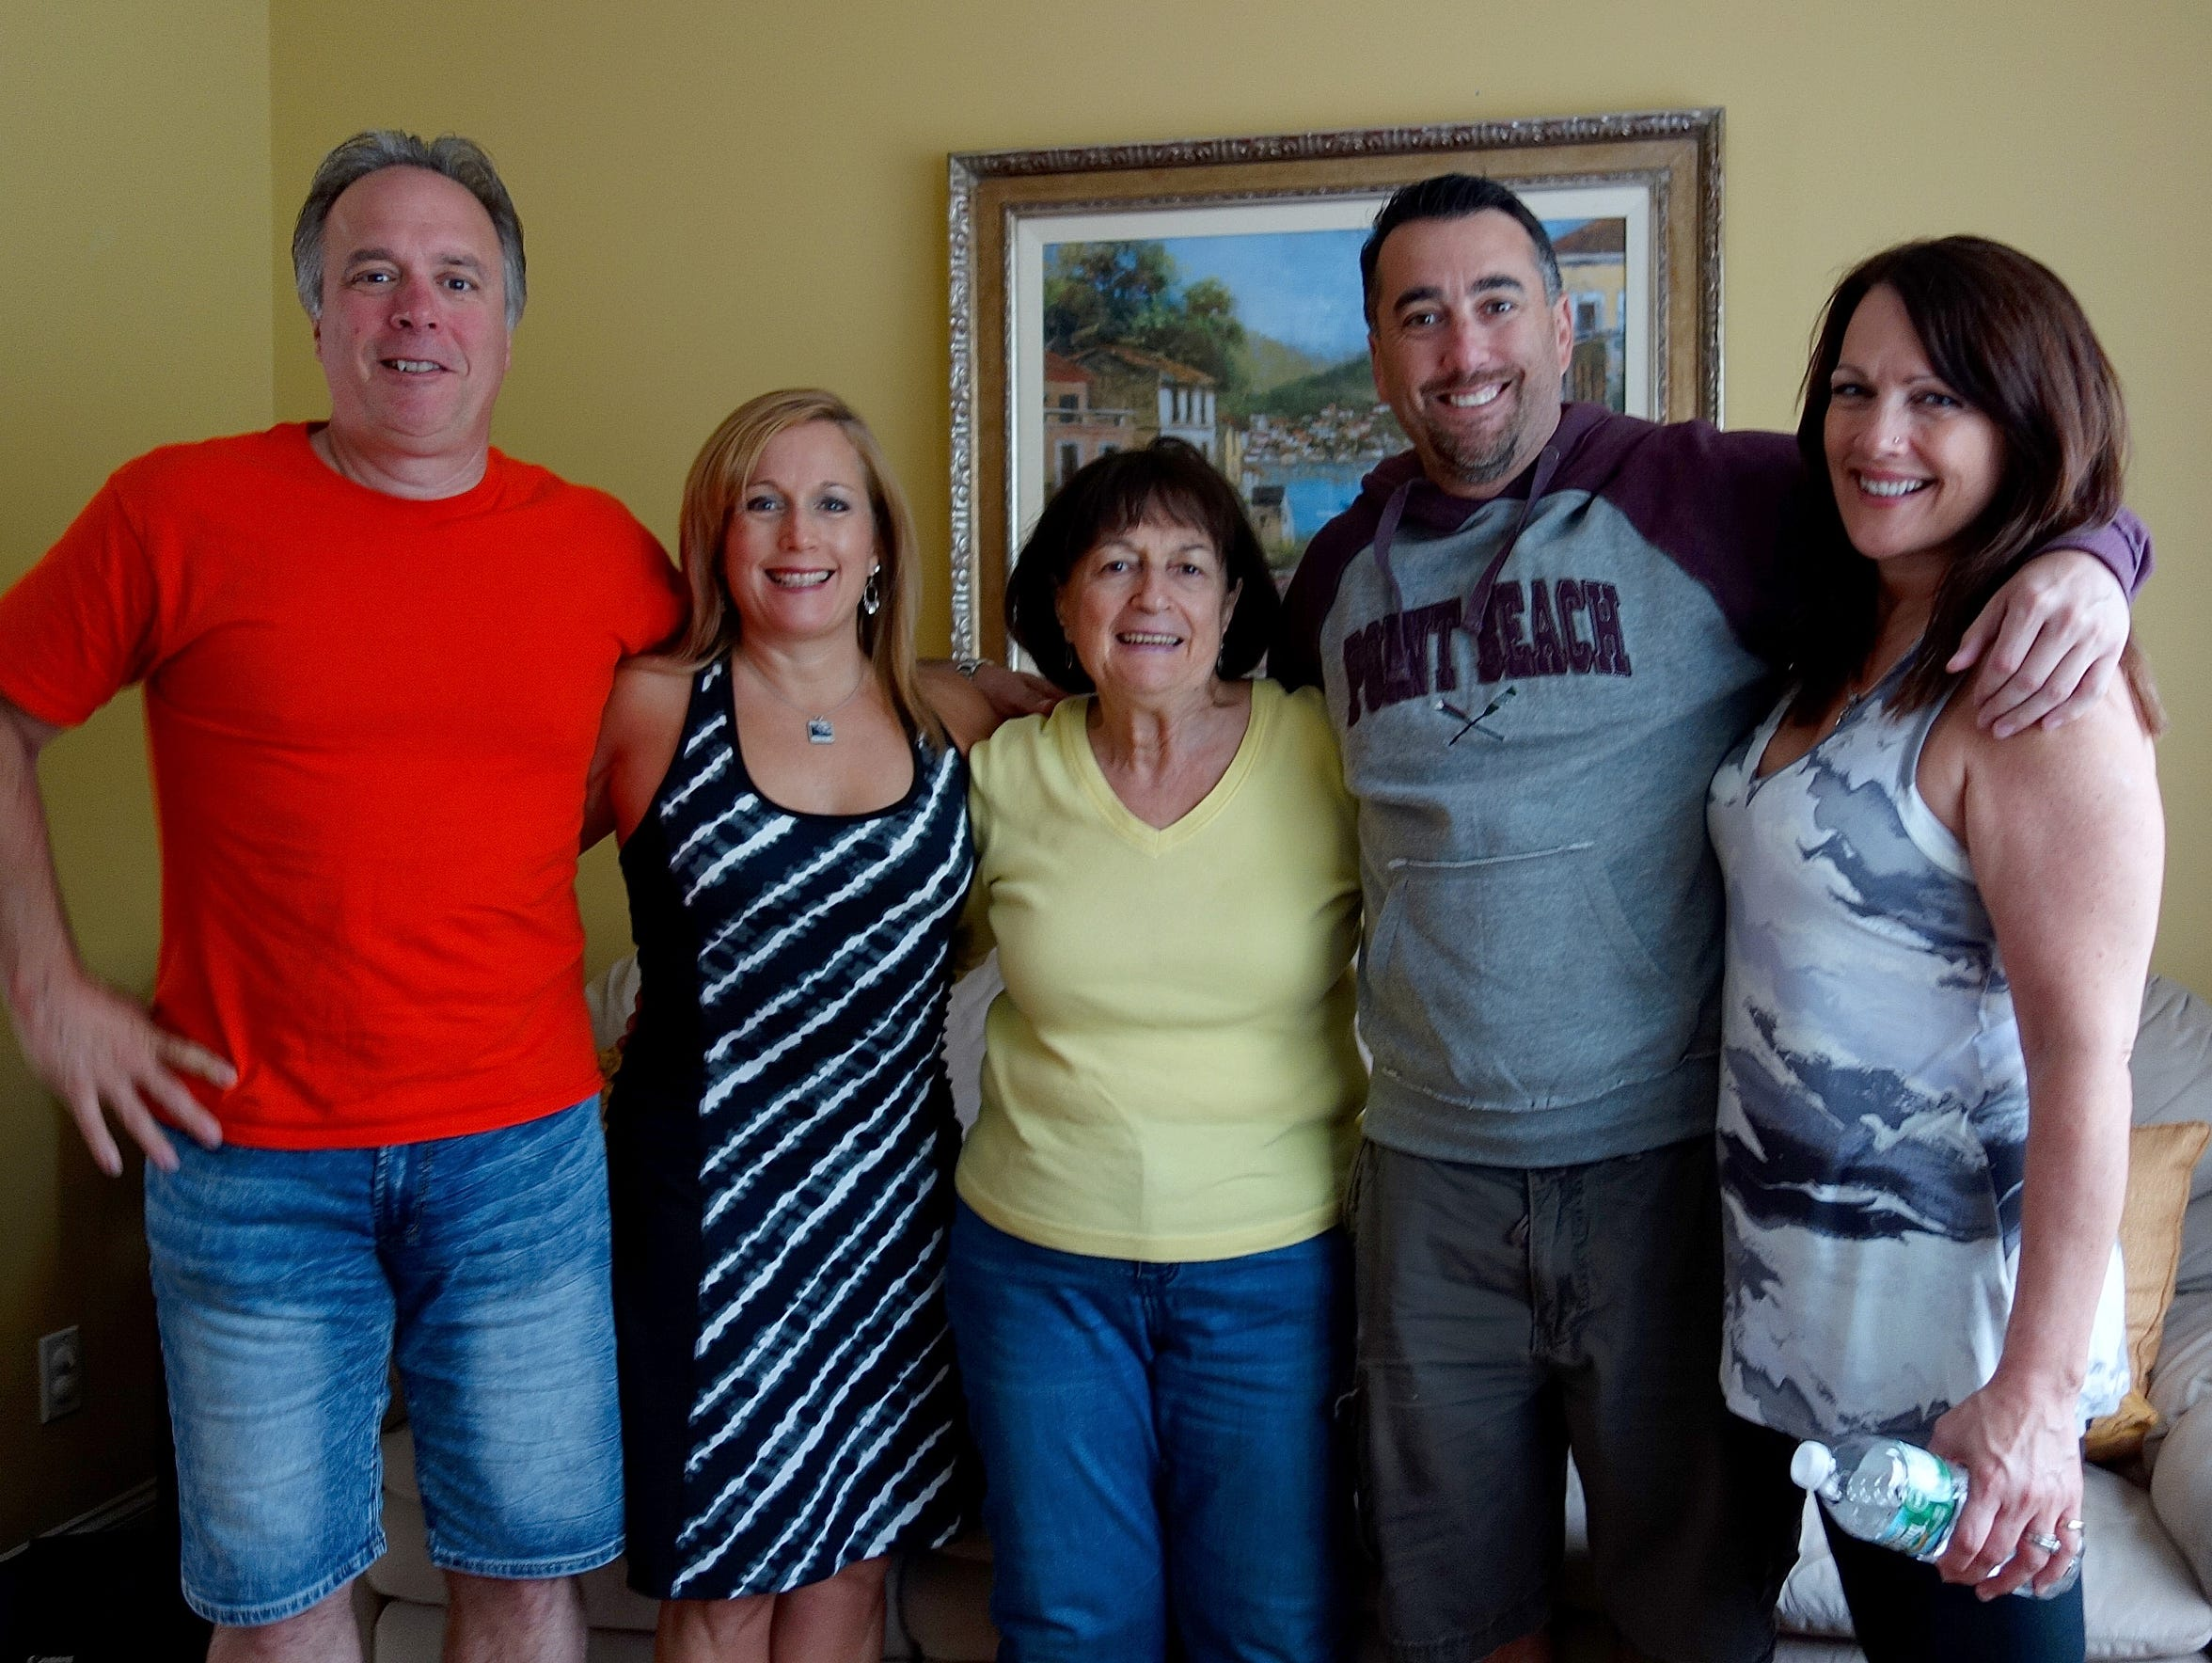 Dr. Teresa Sievers, second from left, at a family reunion